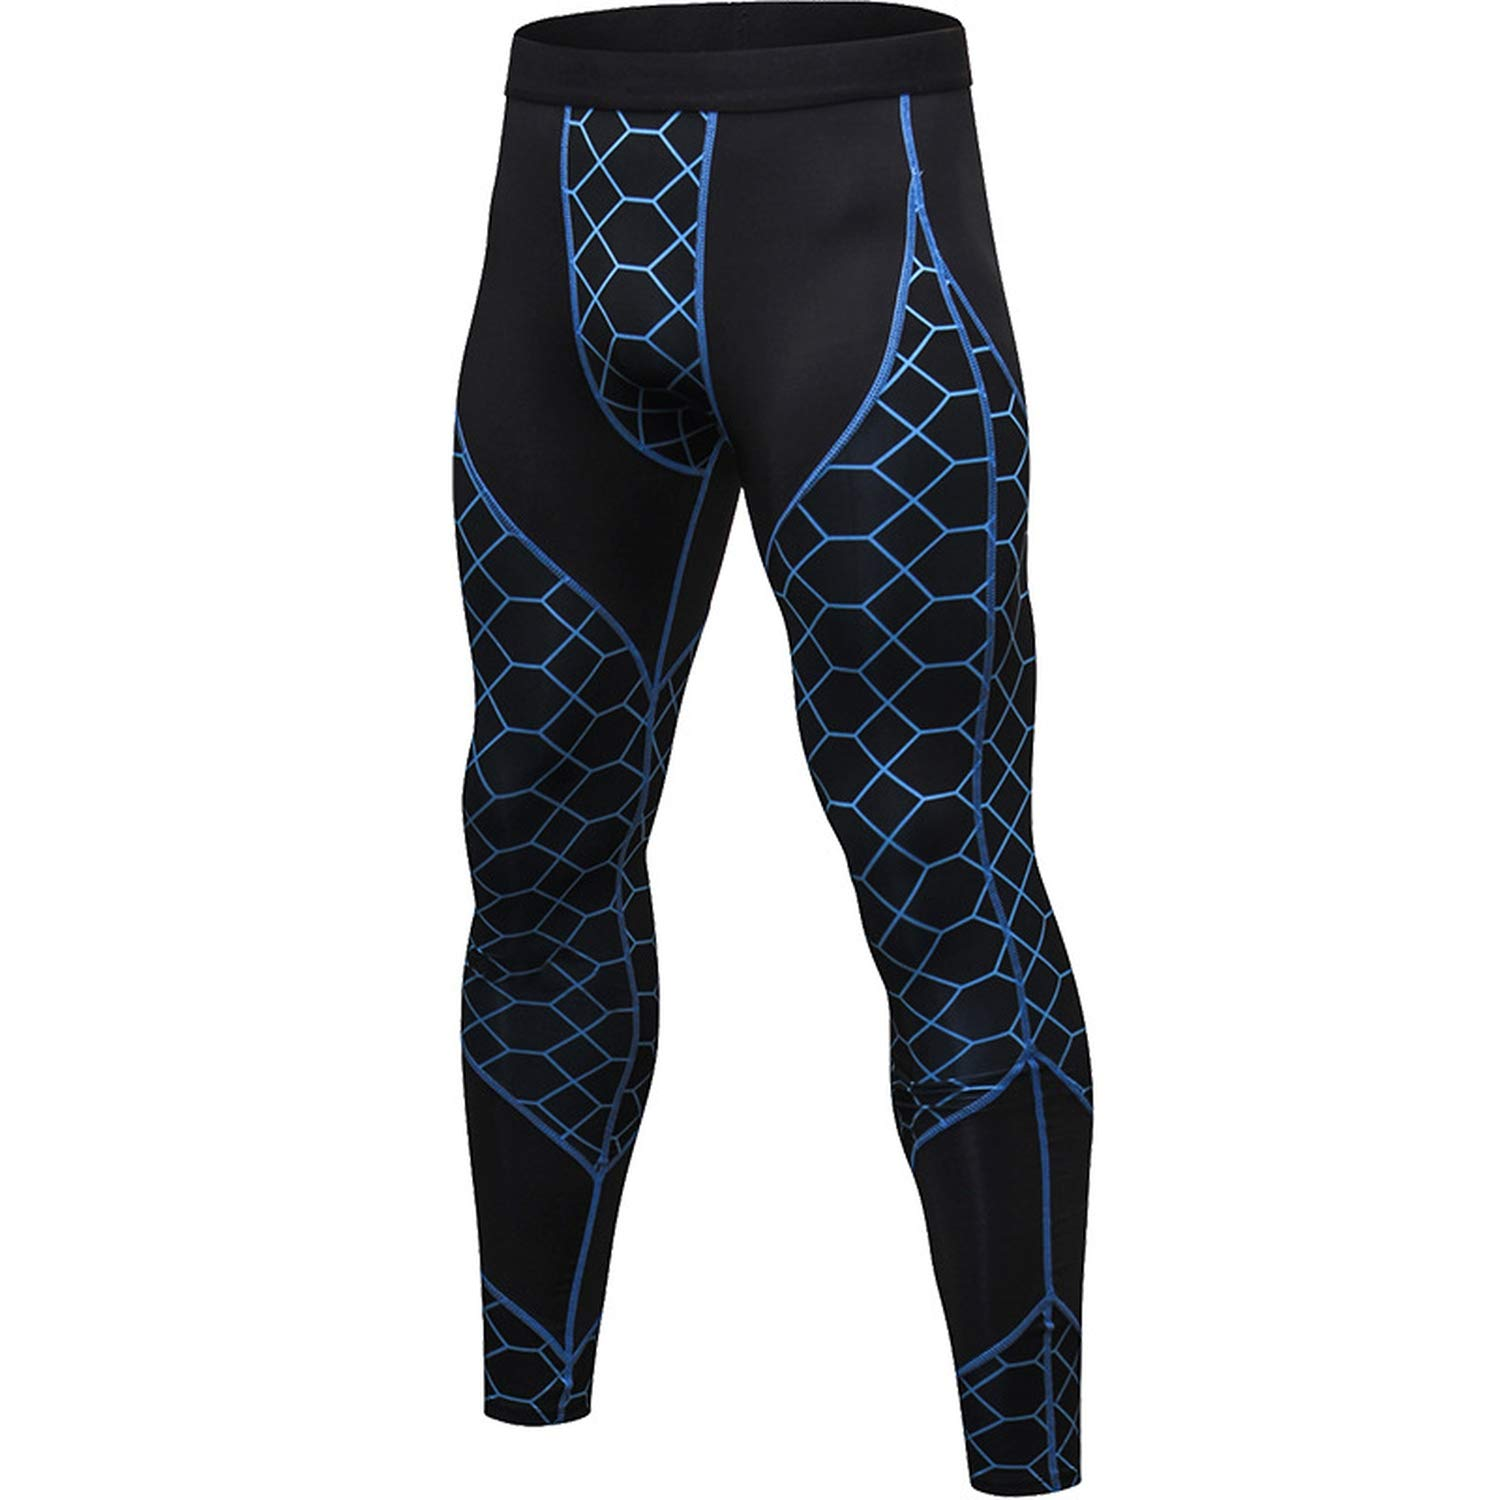 LNRVD Compression Pants Mens Running Pants Fitness Workout ...